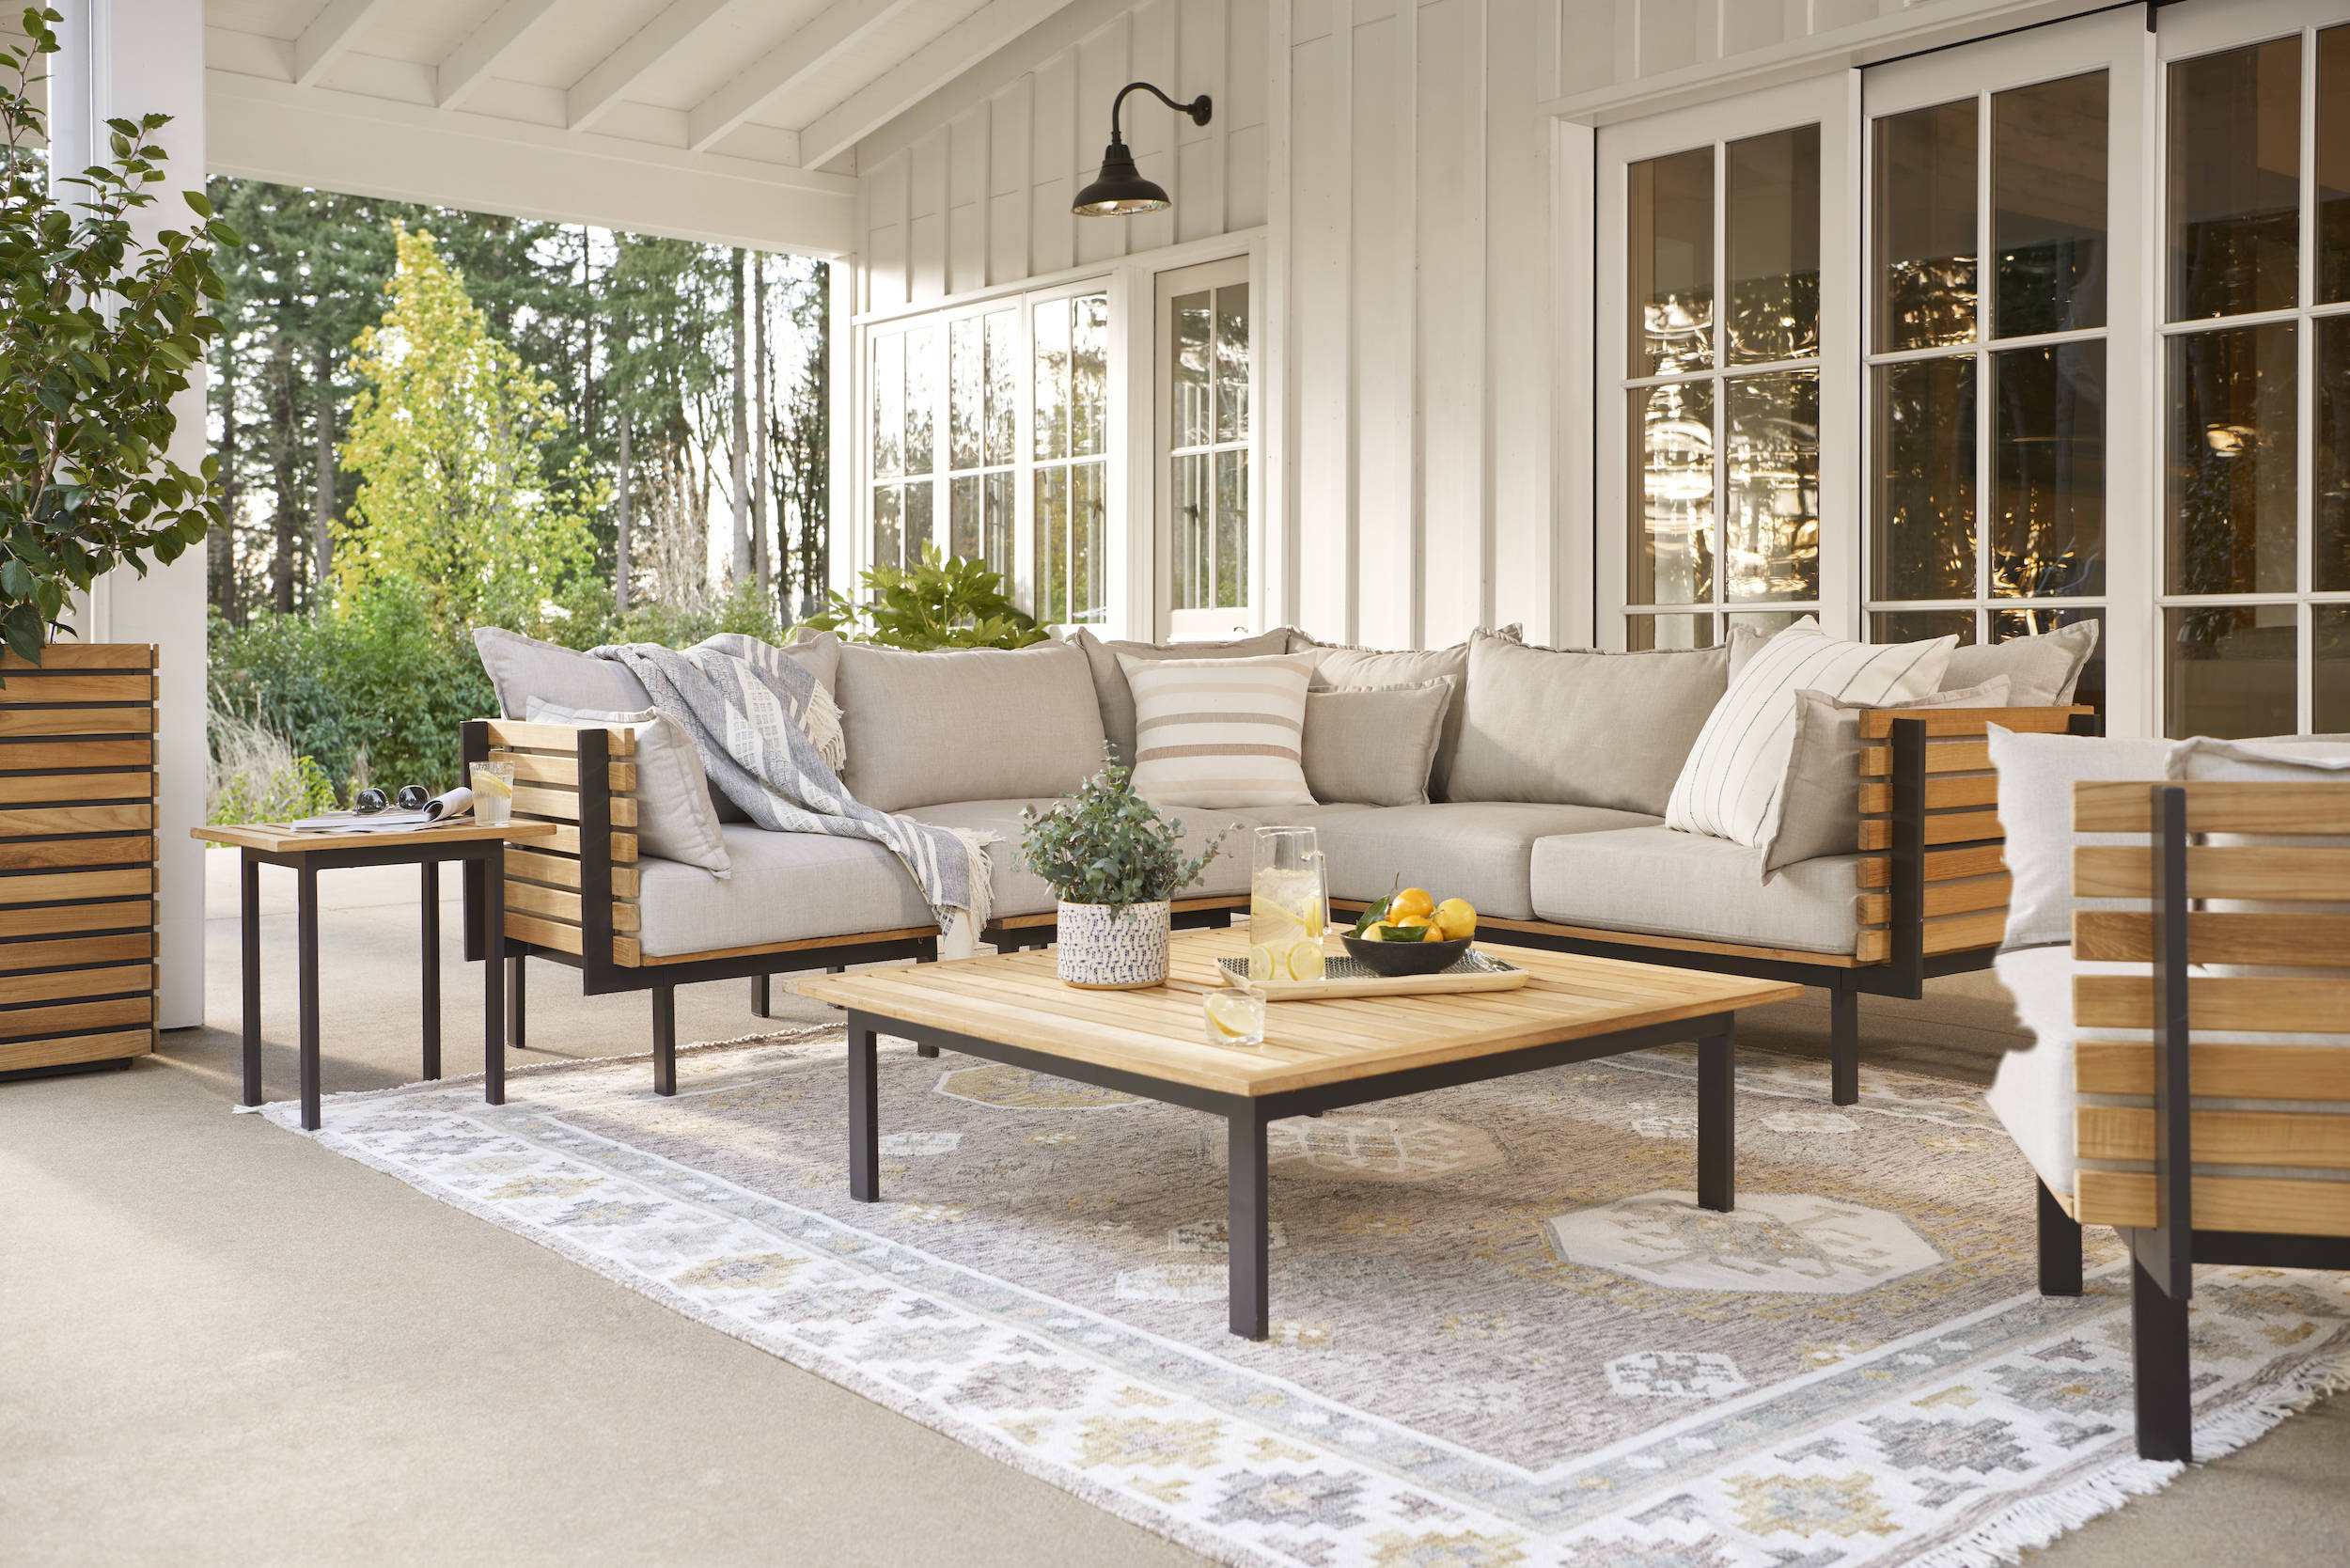 A comfortable, good-looking sofa, designed for outdoors: The Jasper Teak Three-Piece Sectional ($5,7) is crafted from sustainably sourced FSC-certified Grade A teak, which naturally repels water and is meant to age over time. The thick cushions are upholstered in durable, quick-dry Sunbrella fabric that&#8